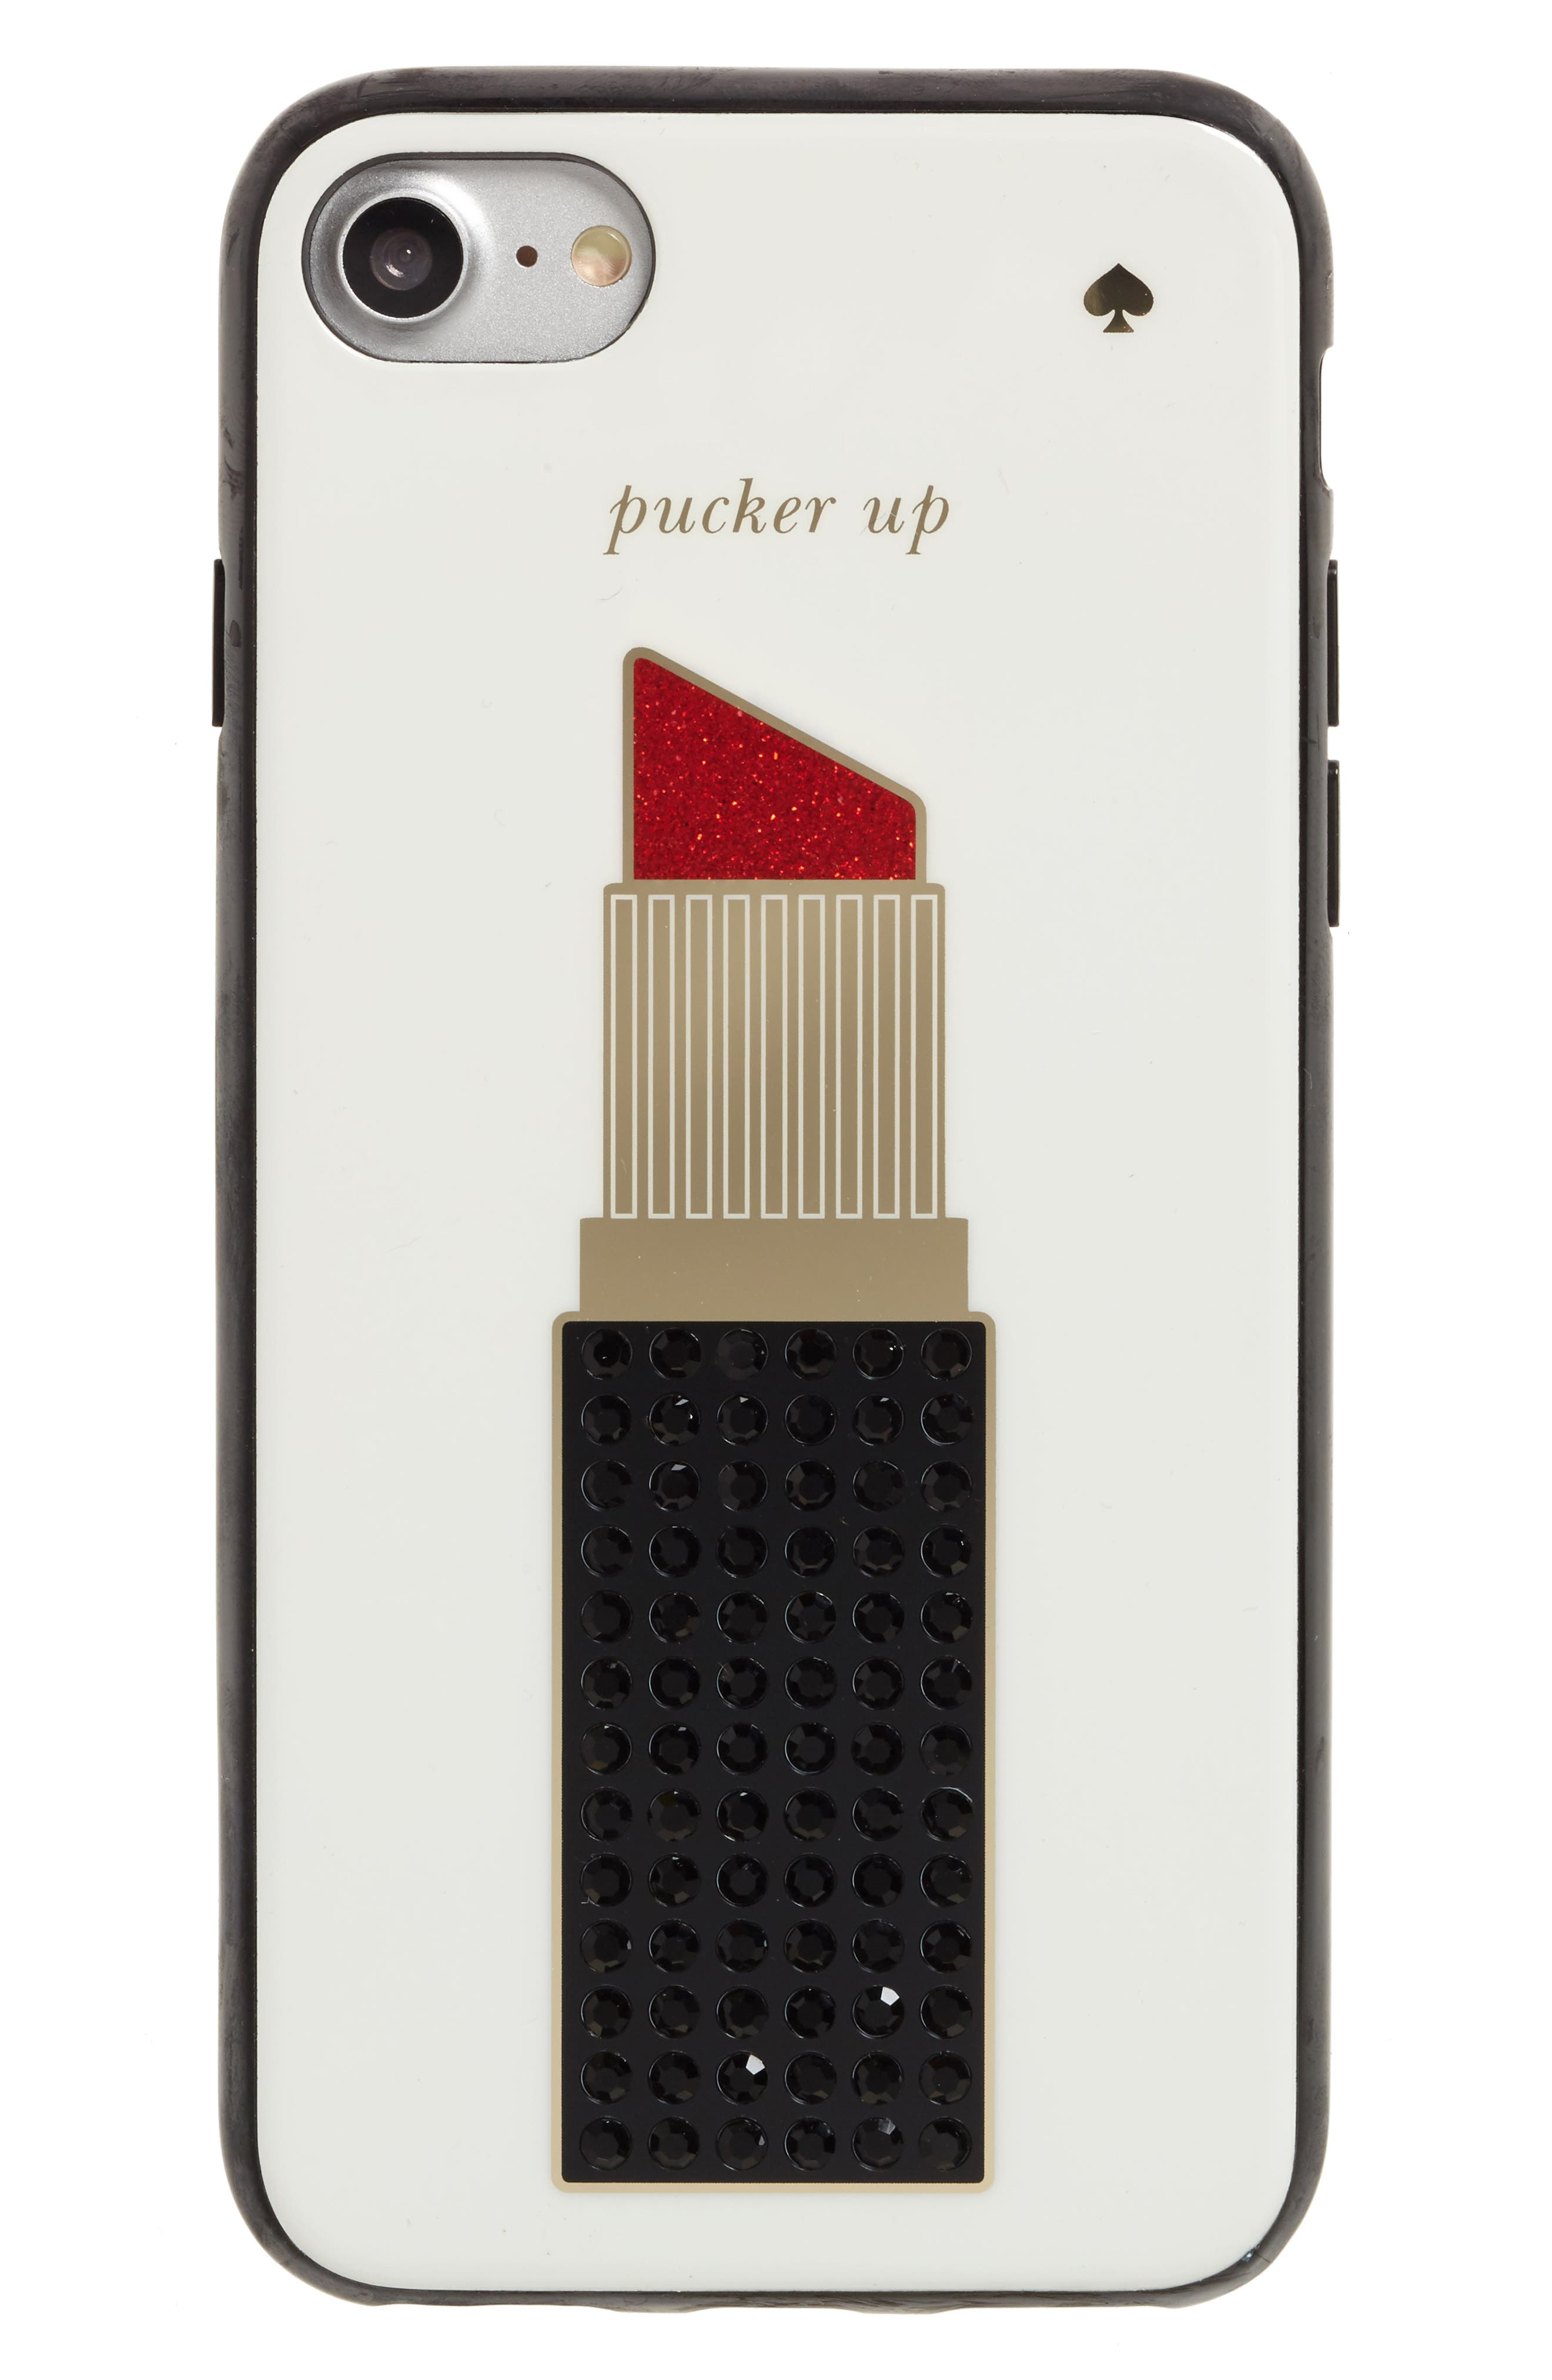 KATE SPADE NEW YORK pucker up iPhone 7 case